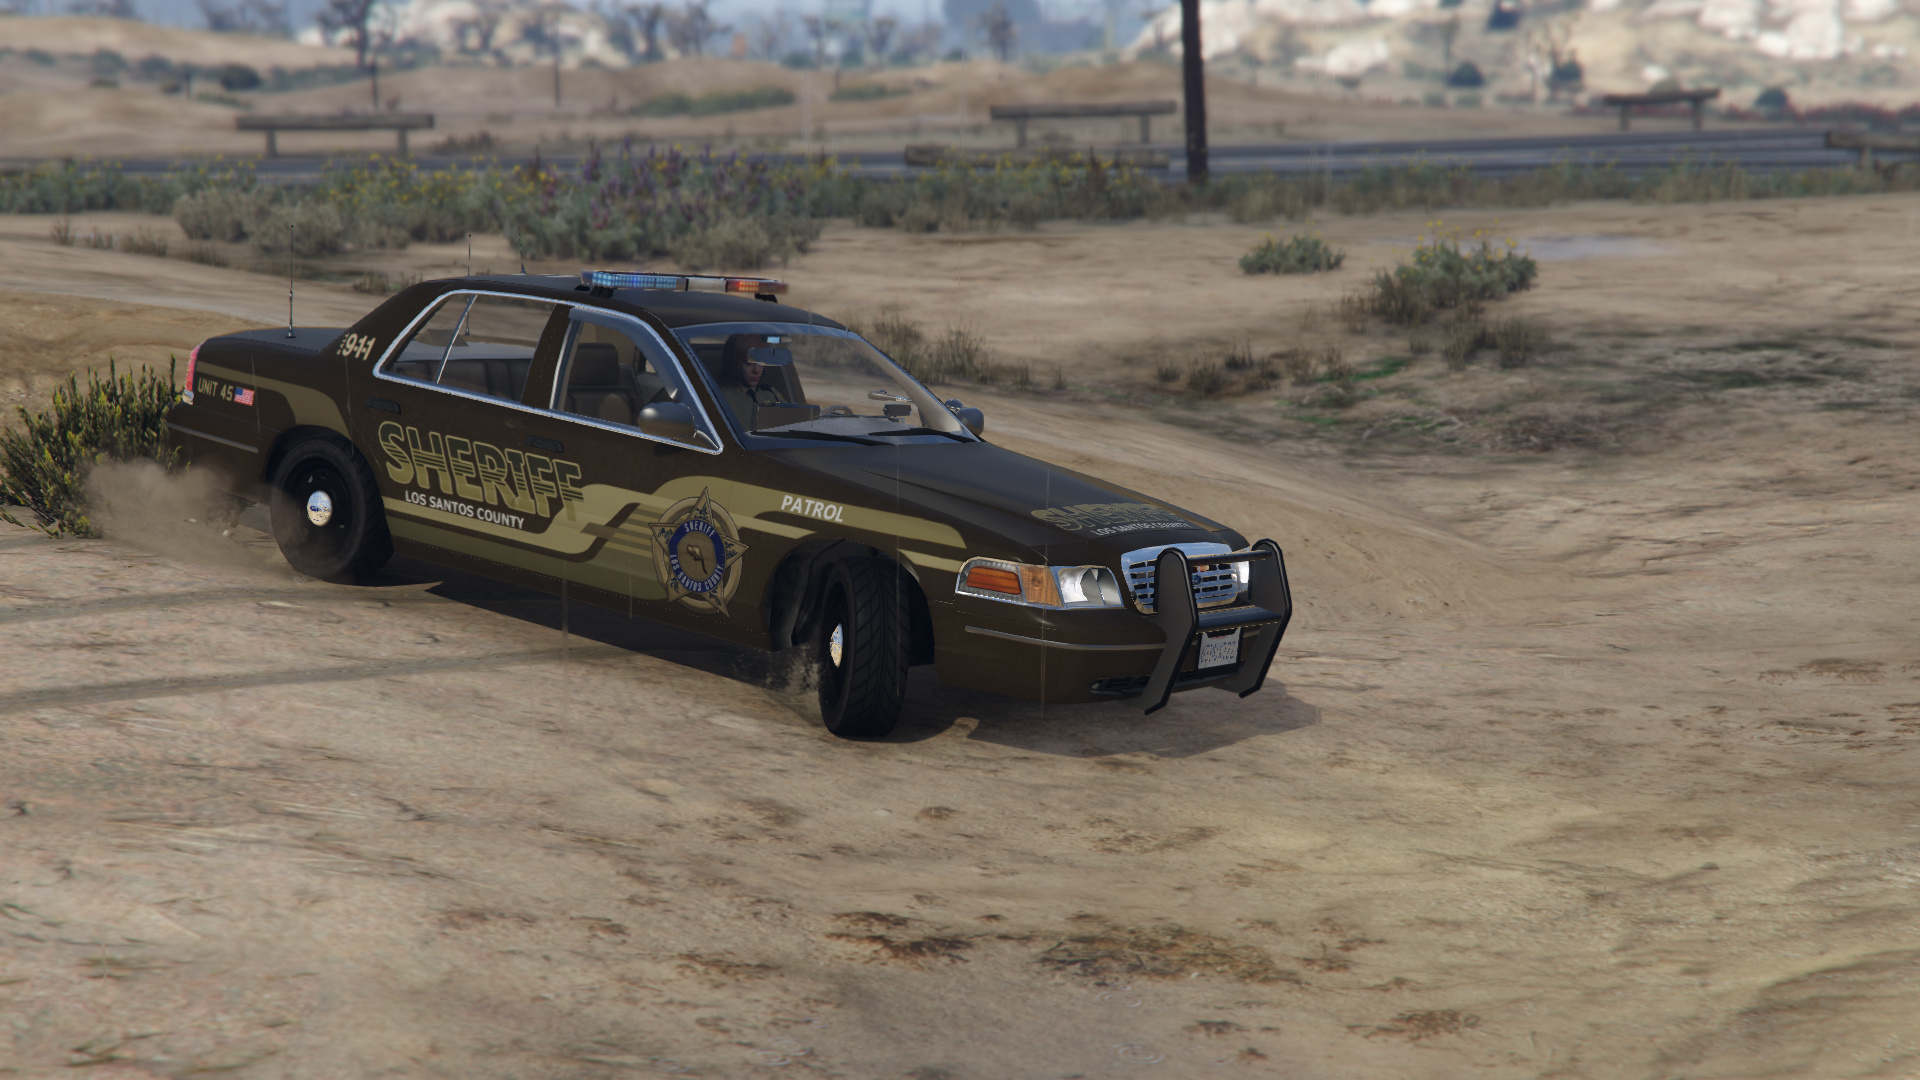 LS County Sheriff for 1999 Ford Crown Victoria GTA5 Mods